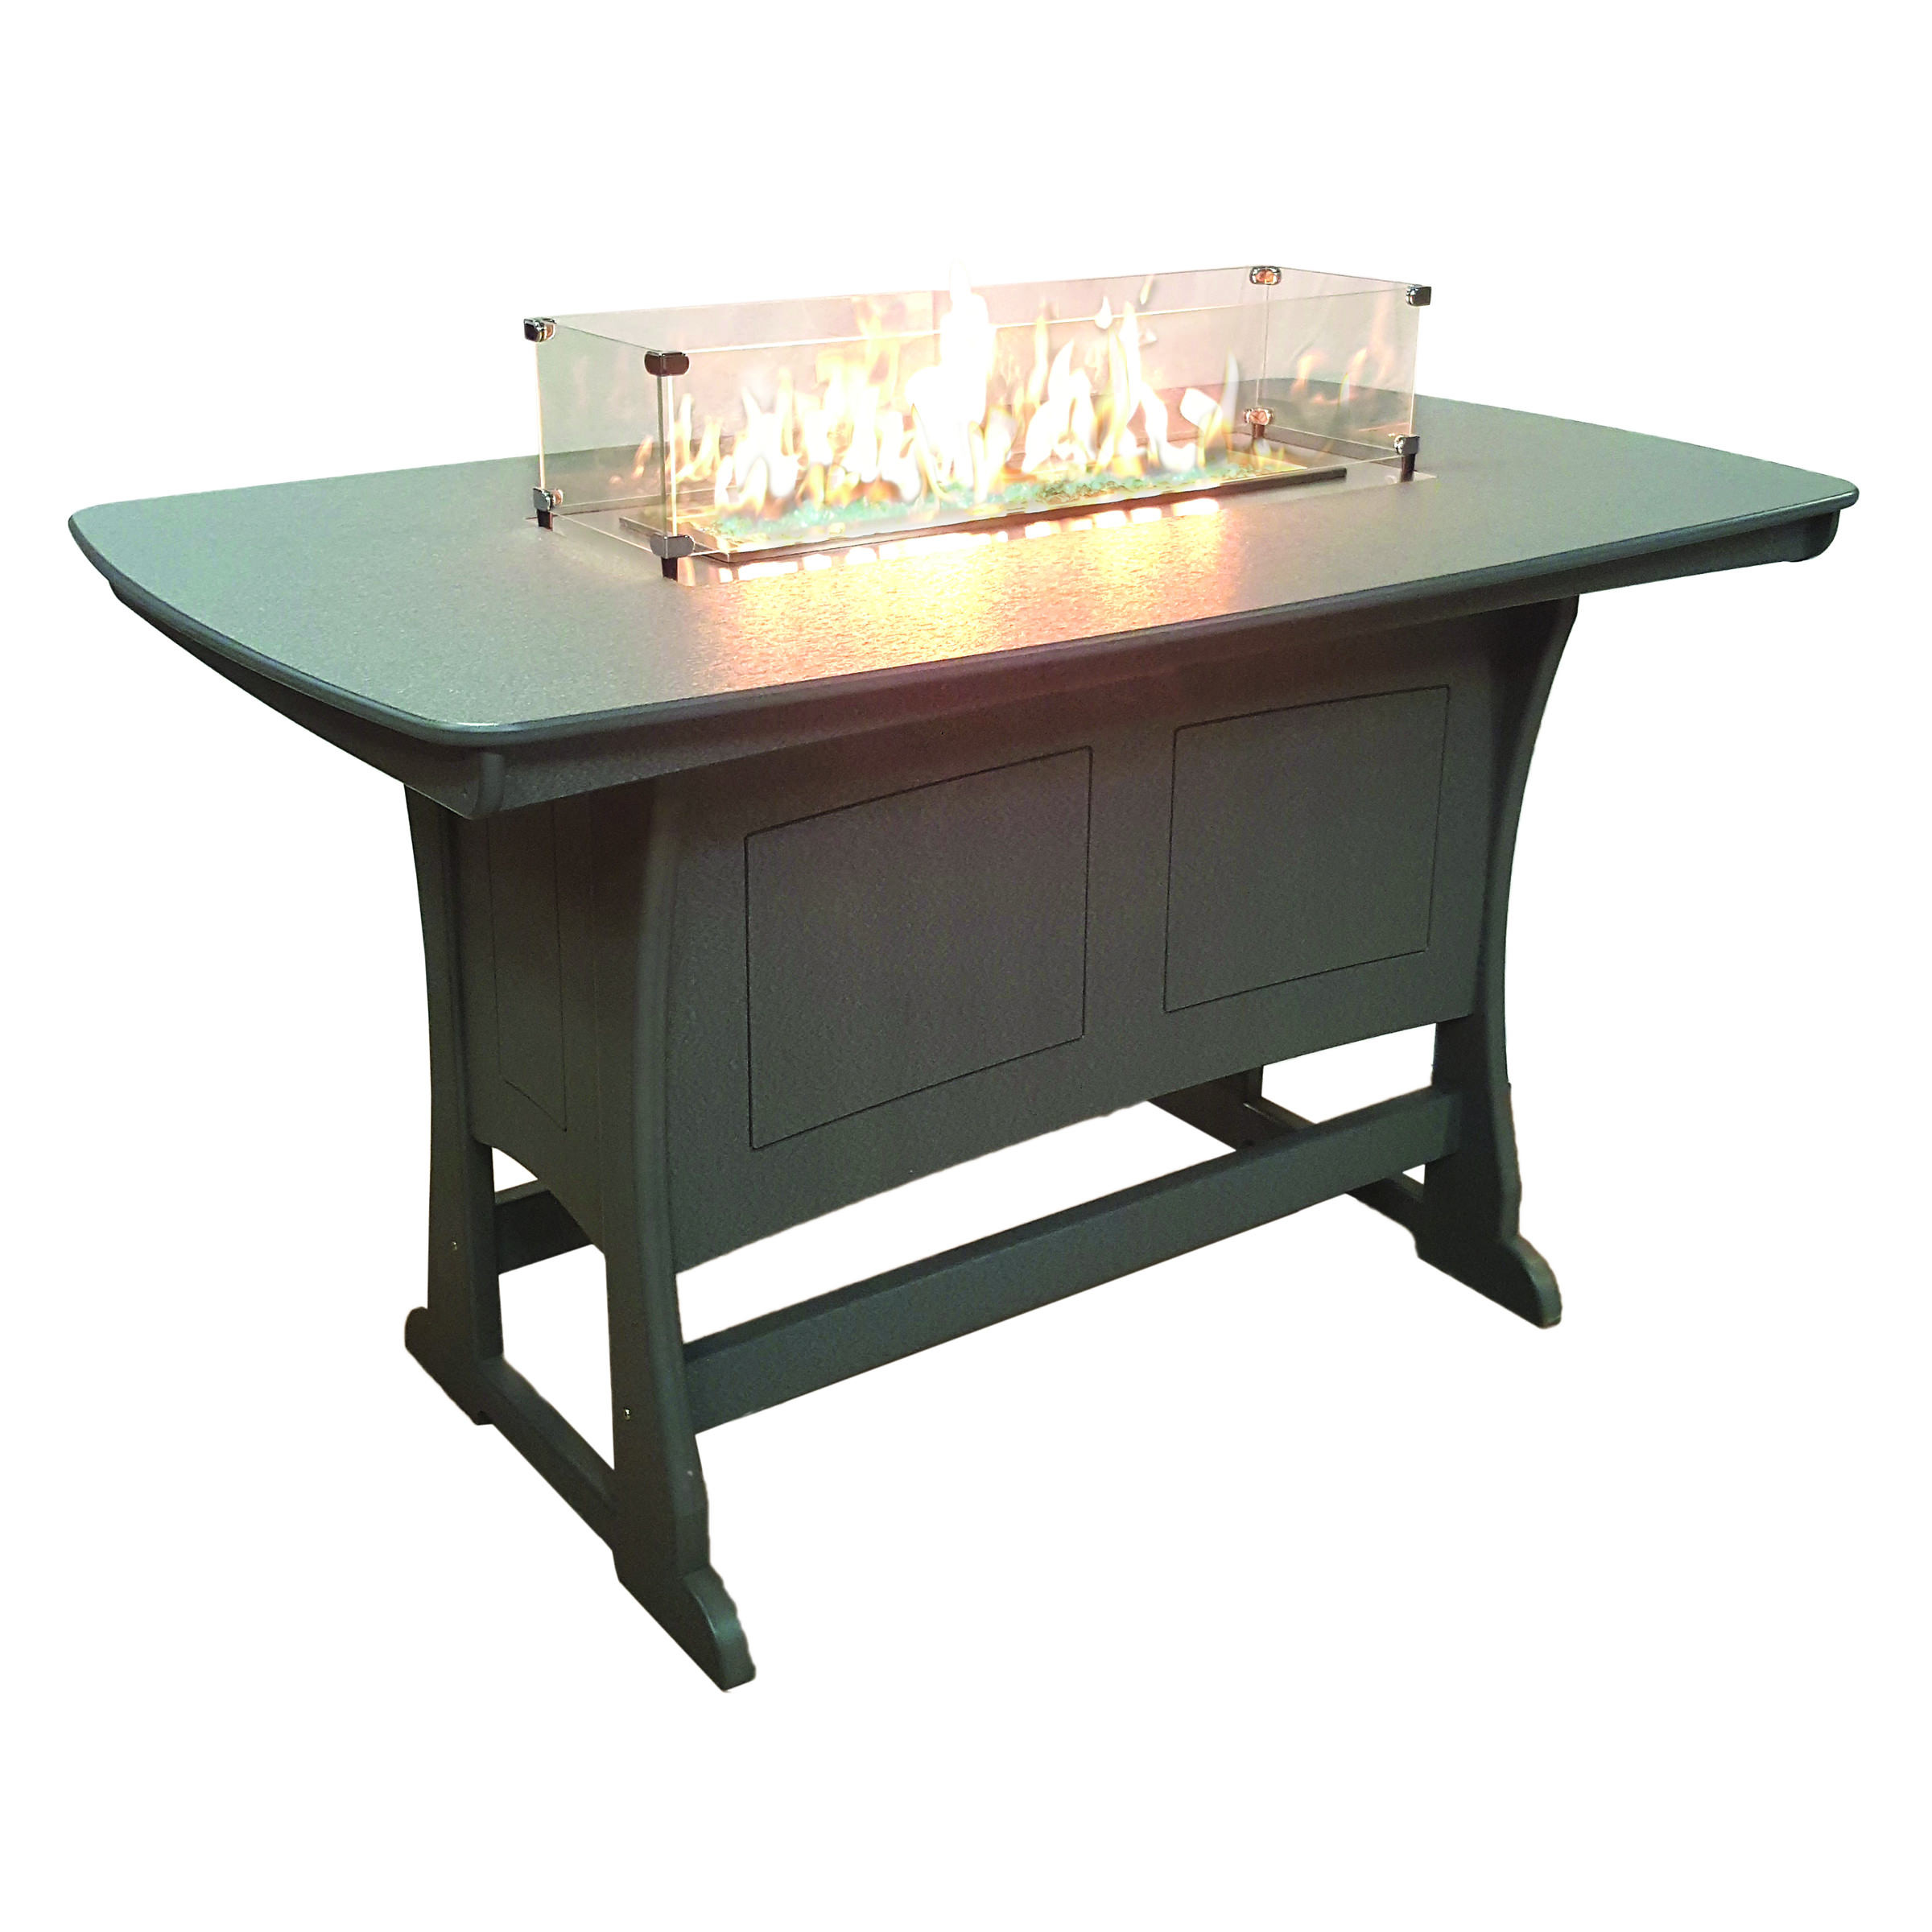 Perfect Choice 72 in Counter Height Fire Table